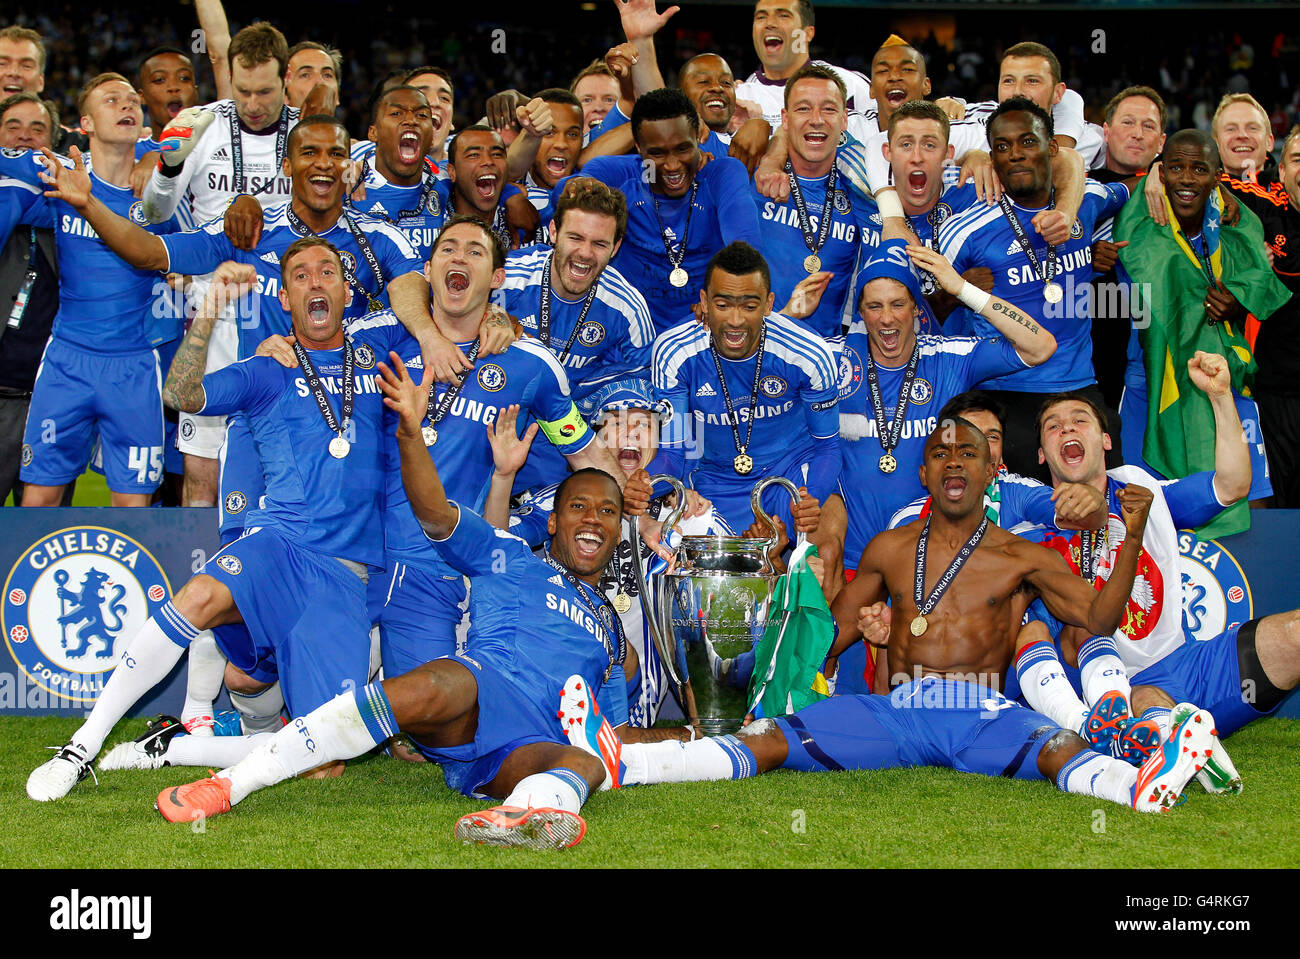 FC Chelsea Team Presenting The Champions League Cup 2012 UEFA Final Bayern Munich Vs 4 5